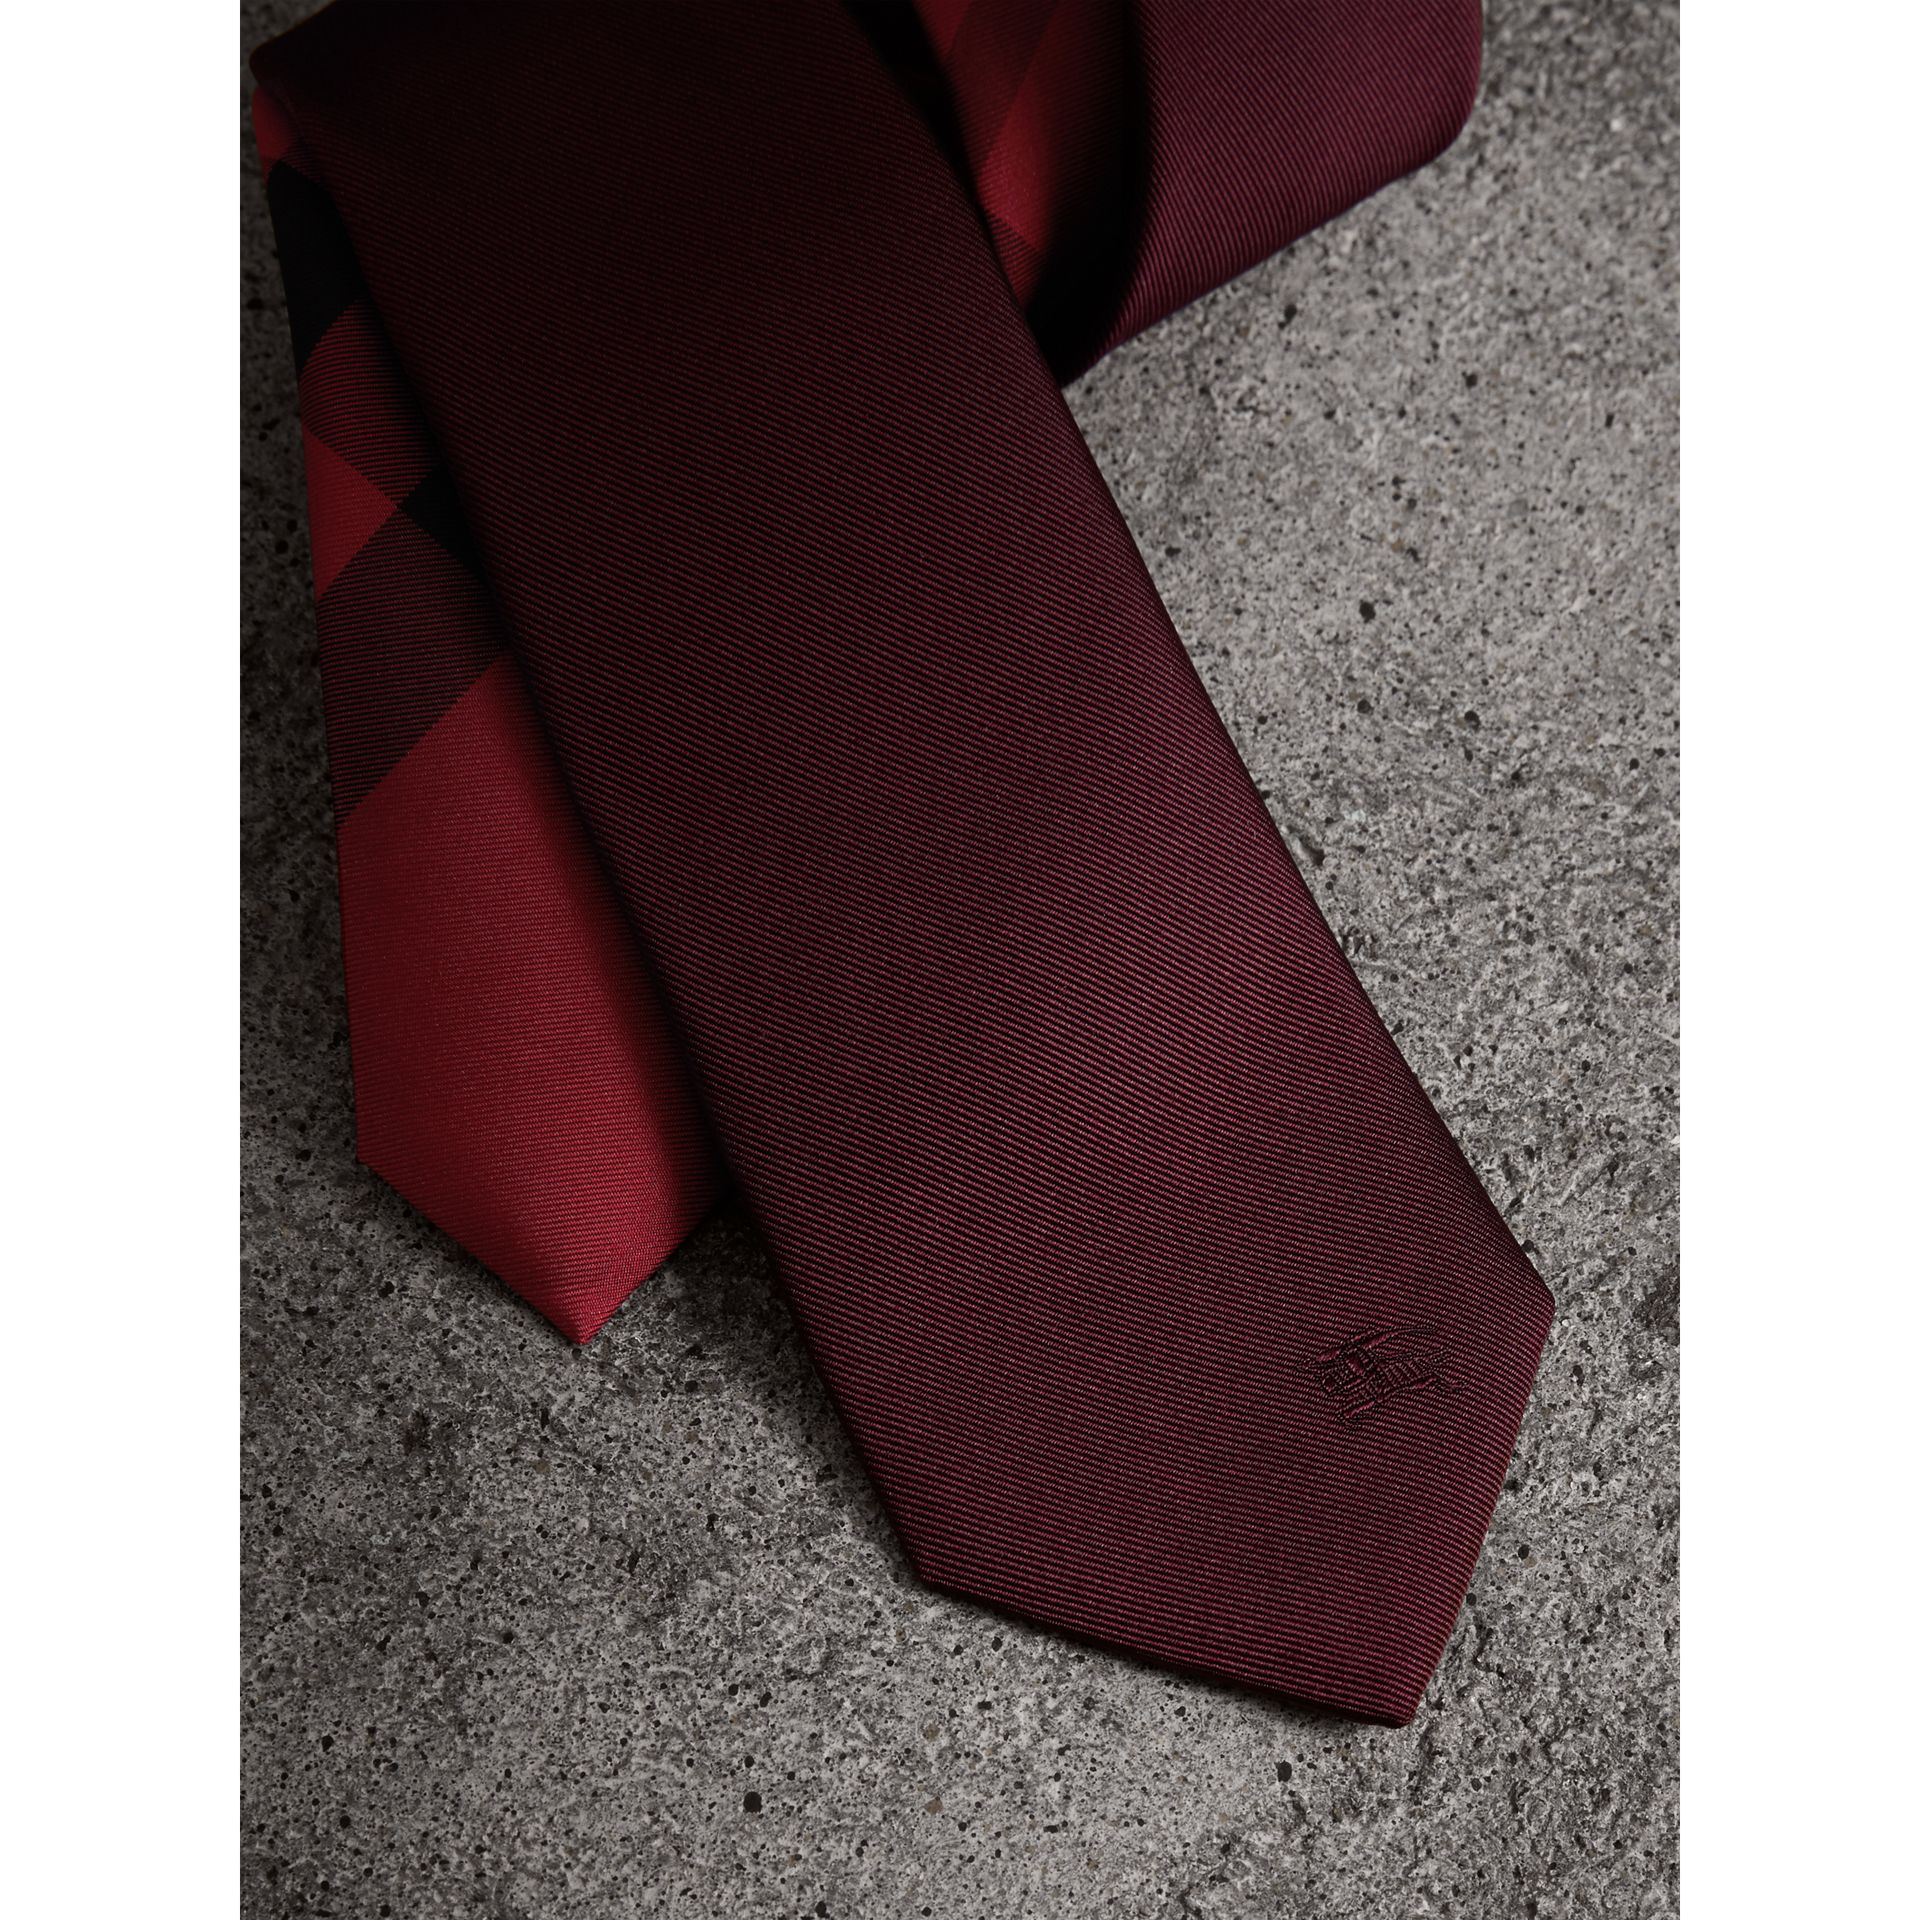 Slim Cut Check Silk Twill Tie in Mahogany Red - Men | Burberry United States - gallery image 1